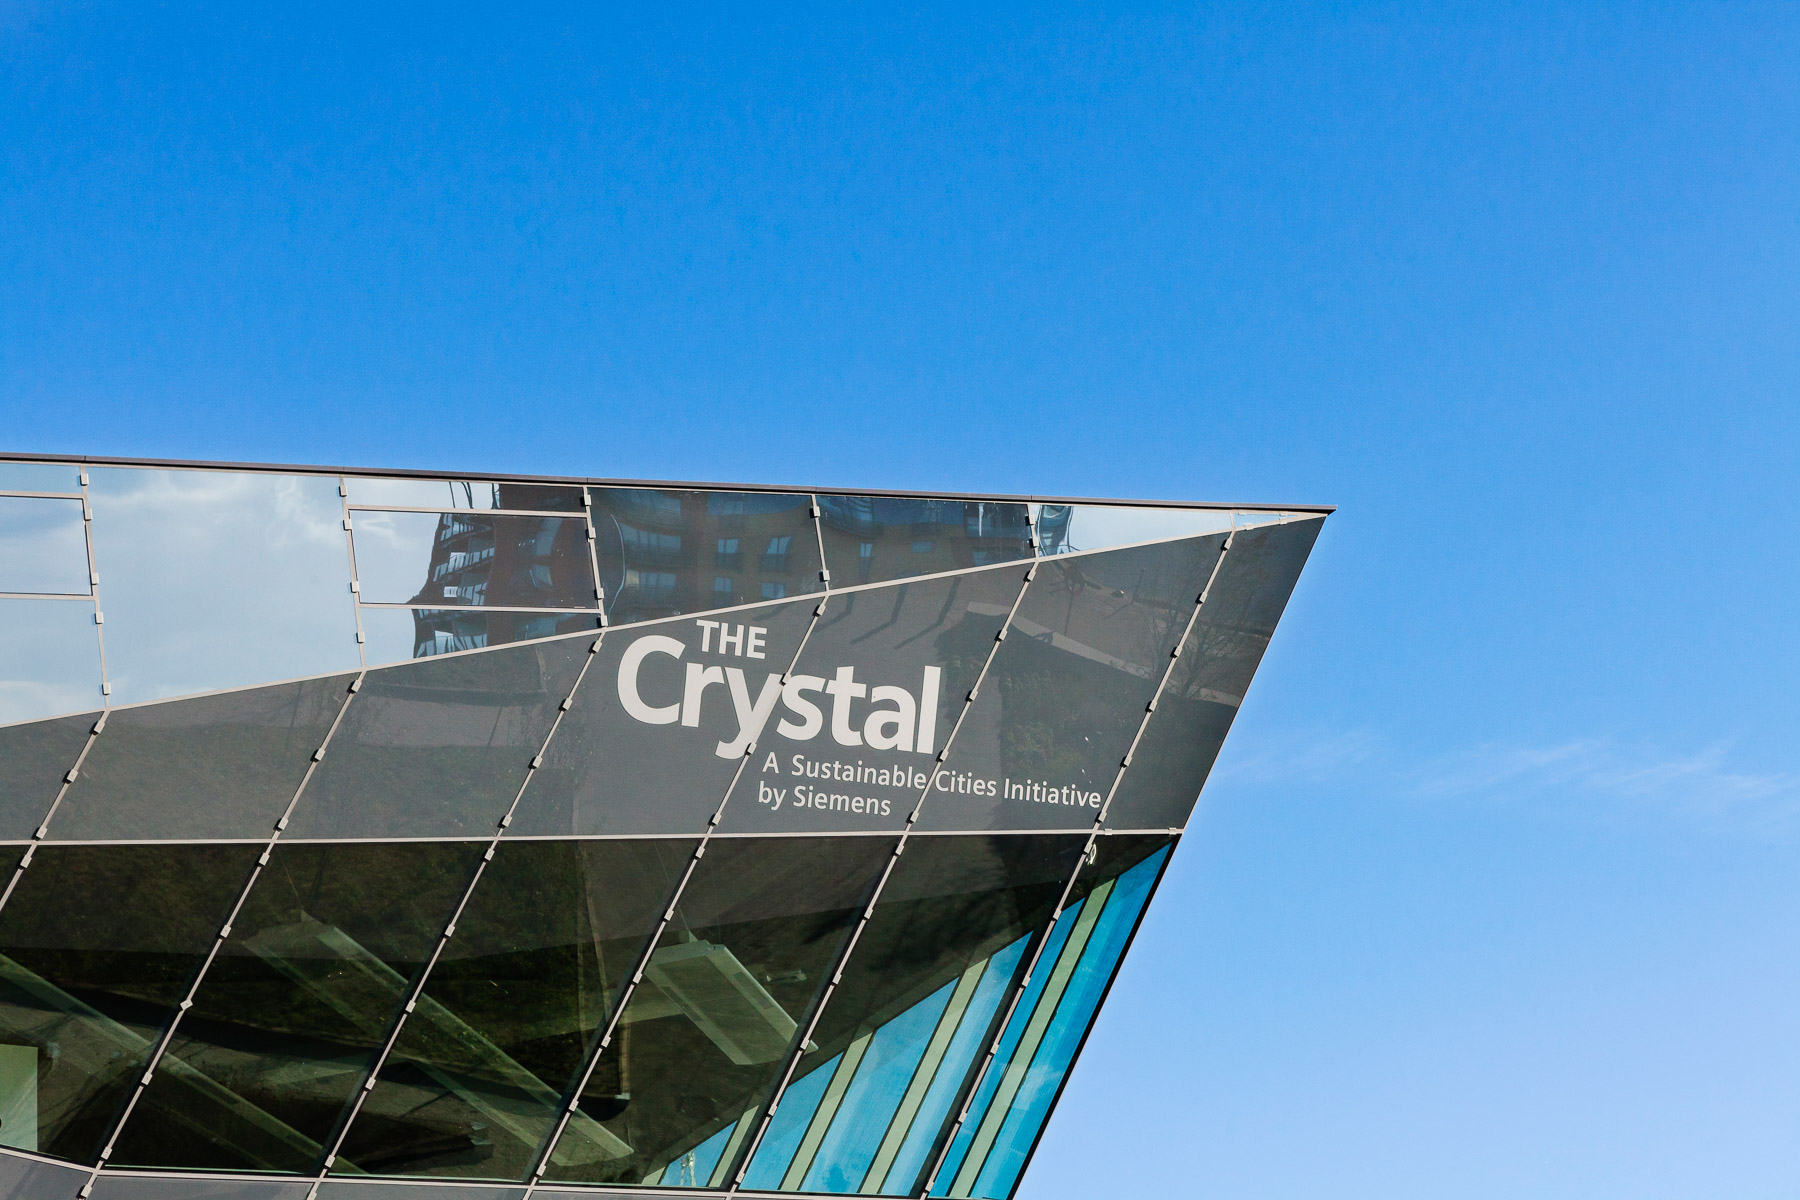 The Crystal London - Wilkinson Eyre Architects - London, UK